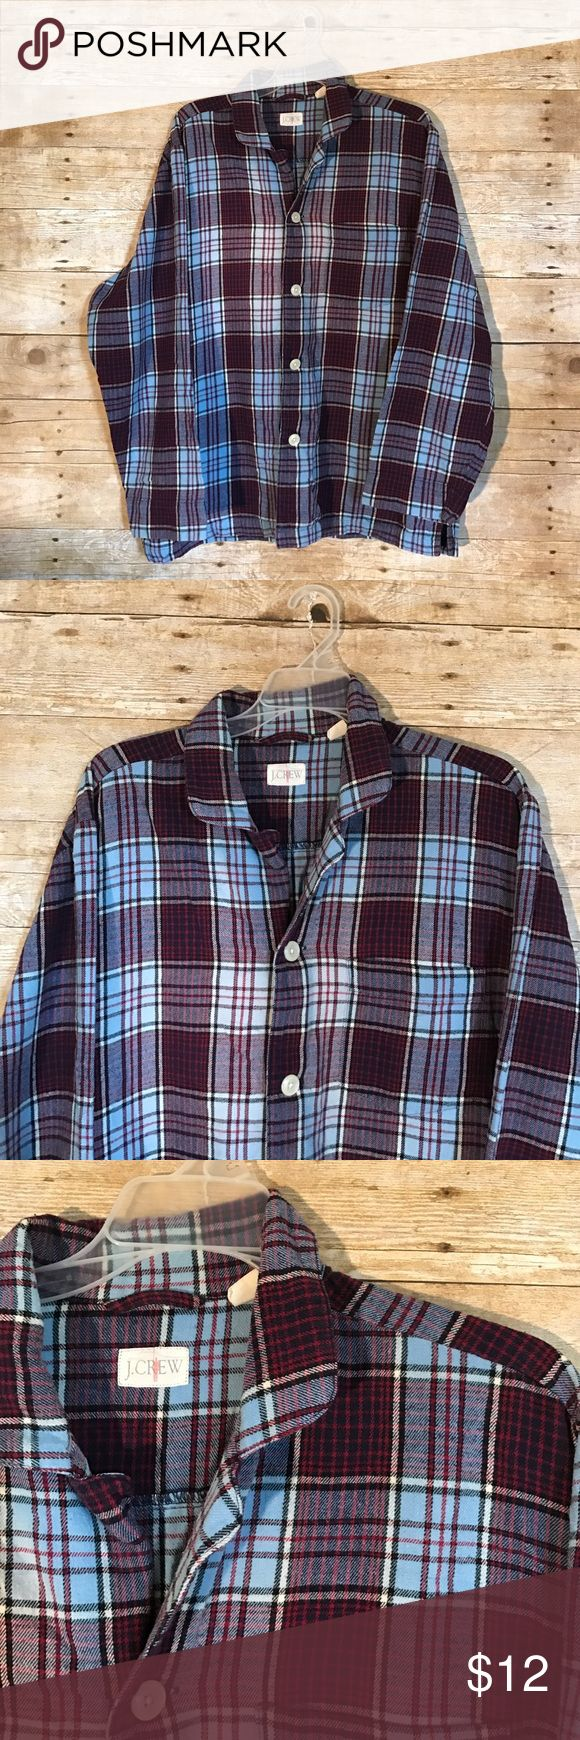 J. CREW Men's Flannel Pajama top checkered size M J. CREW Brand - checkered Flannel - 100% Cotton - Men's size Medium - great condition NO rips or stains - burgundy/light blue w/ white buttons - pajama top ‼️FAST SHIPPING ‼️ J. Crew Shirts Tees - Long Sleeve